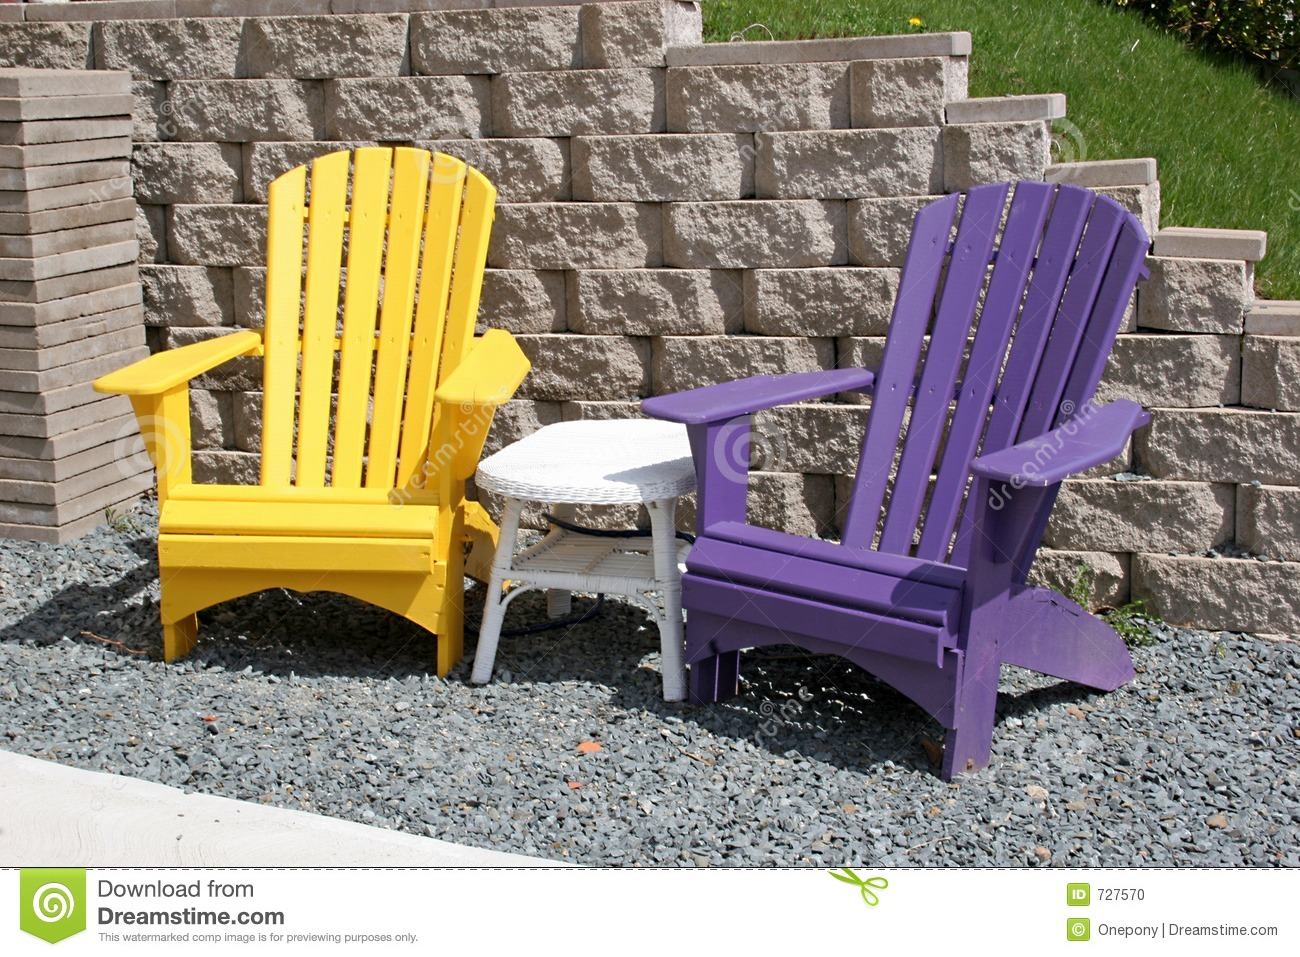 Beau Download Colorful Yard Chairs Stock Photo. Image Of Summertime, Wood    727570